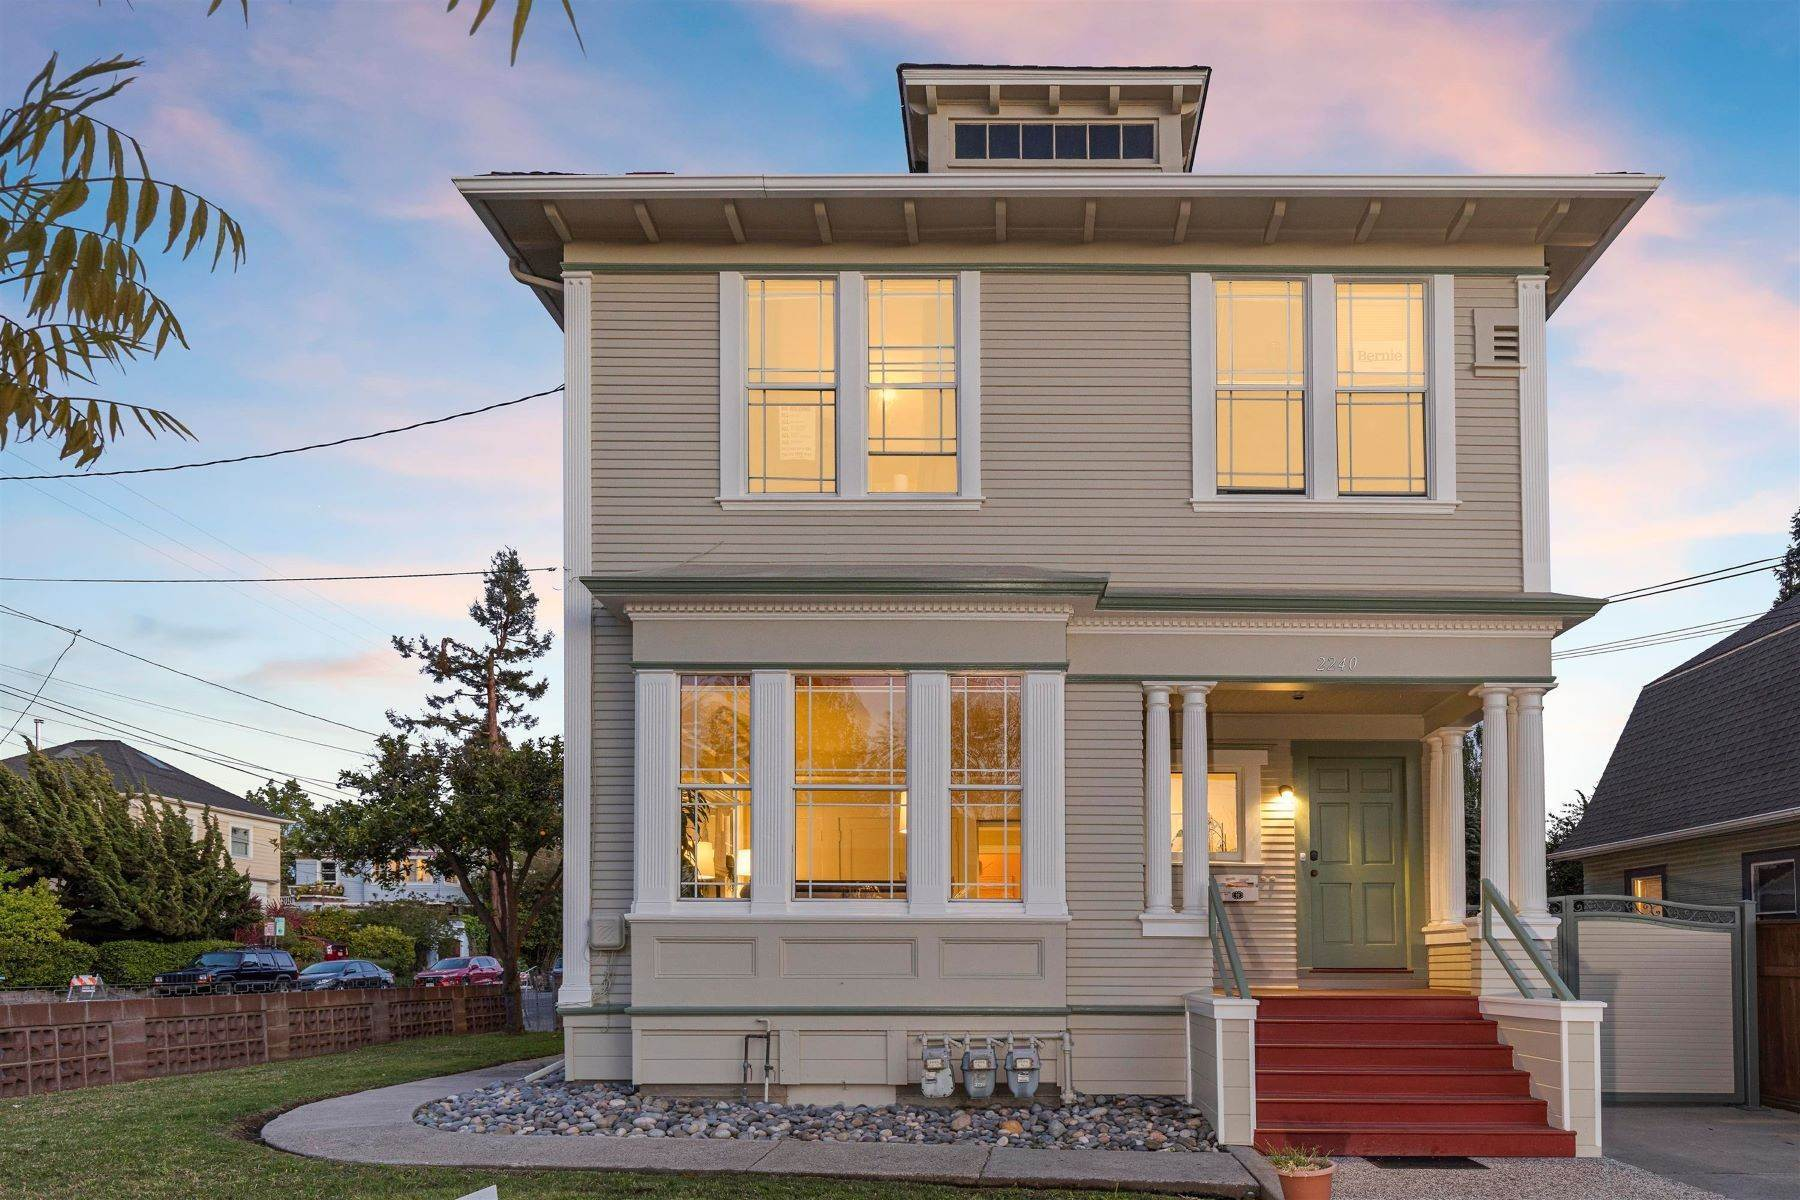 3. Property for Sale at Distinguished Triplex in an Ideal Berkeley Location 2240 Ward Street Berkeley, California 94705 United States